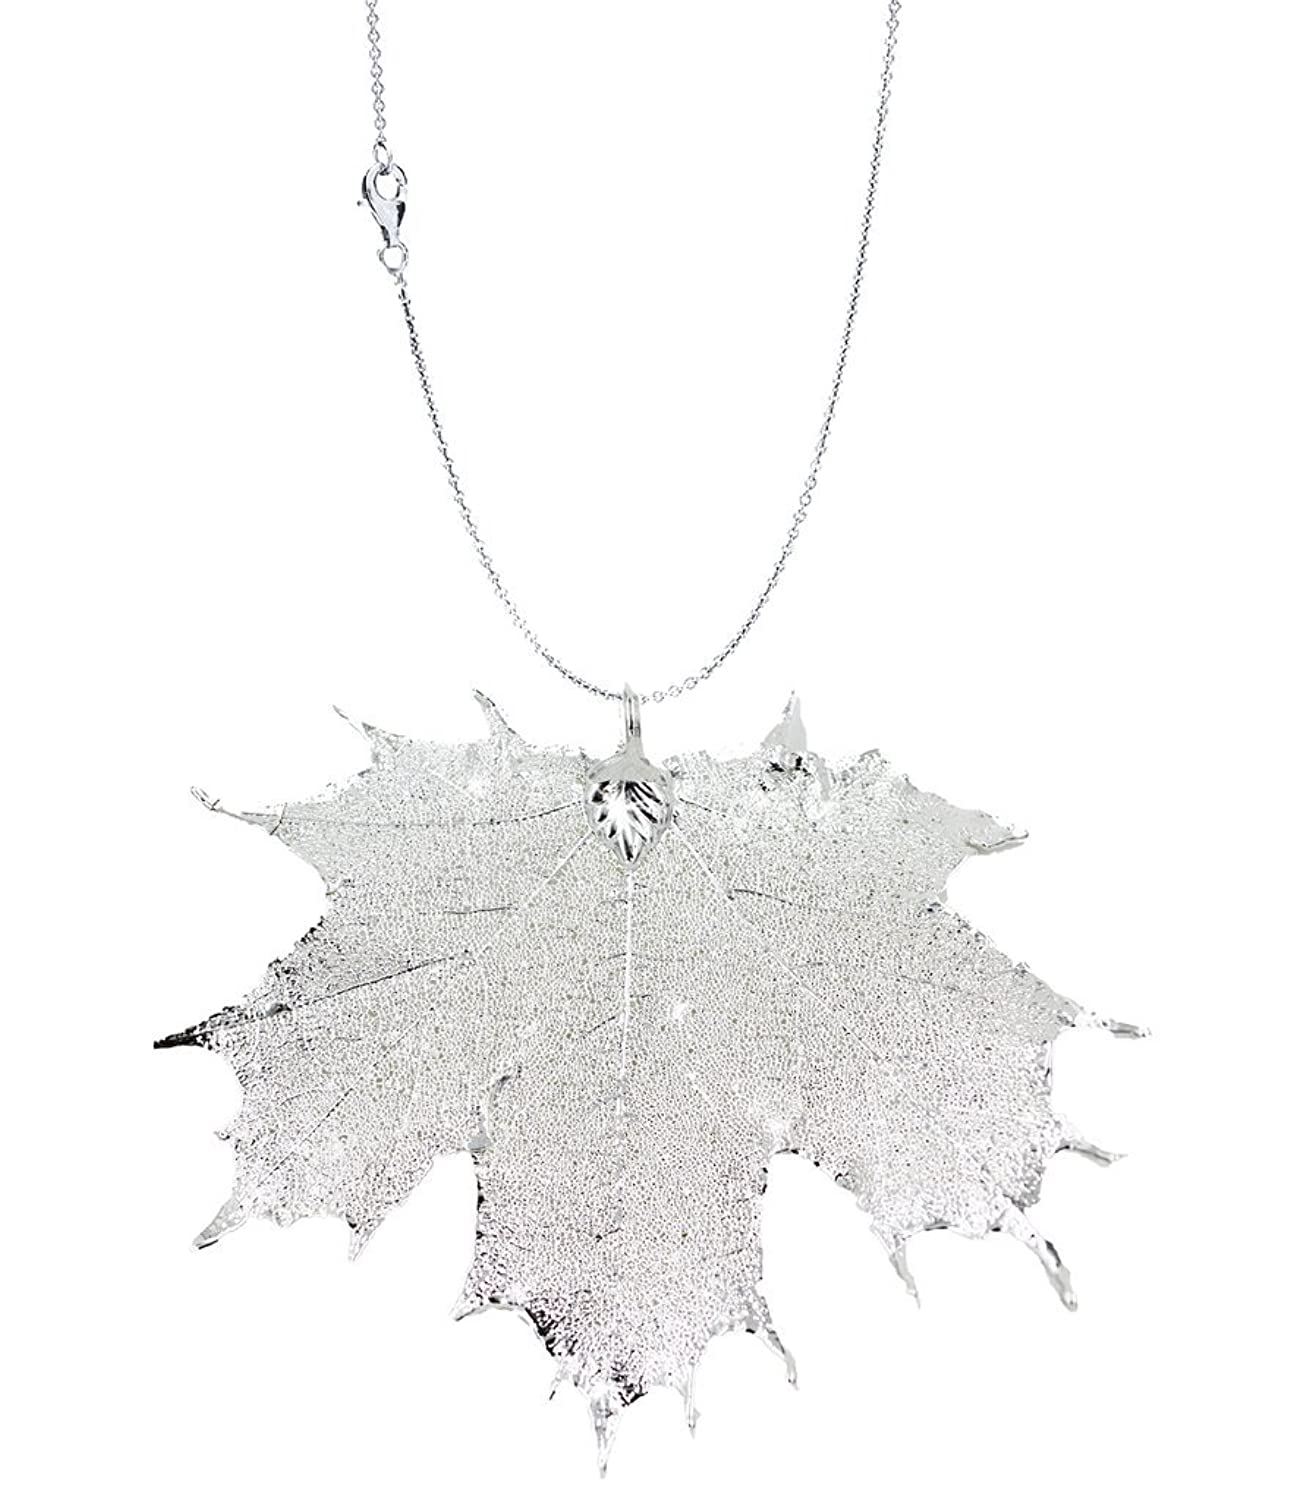 gold pendant canadian leaf chain noura s maple jewellery necklace untitfdfdfdled products